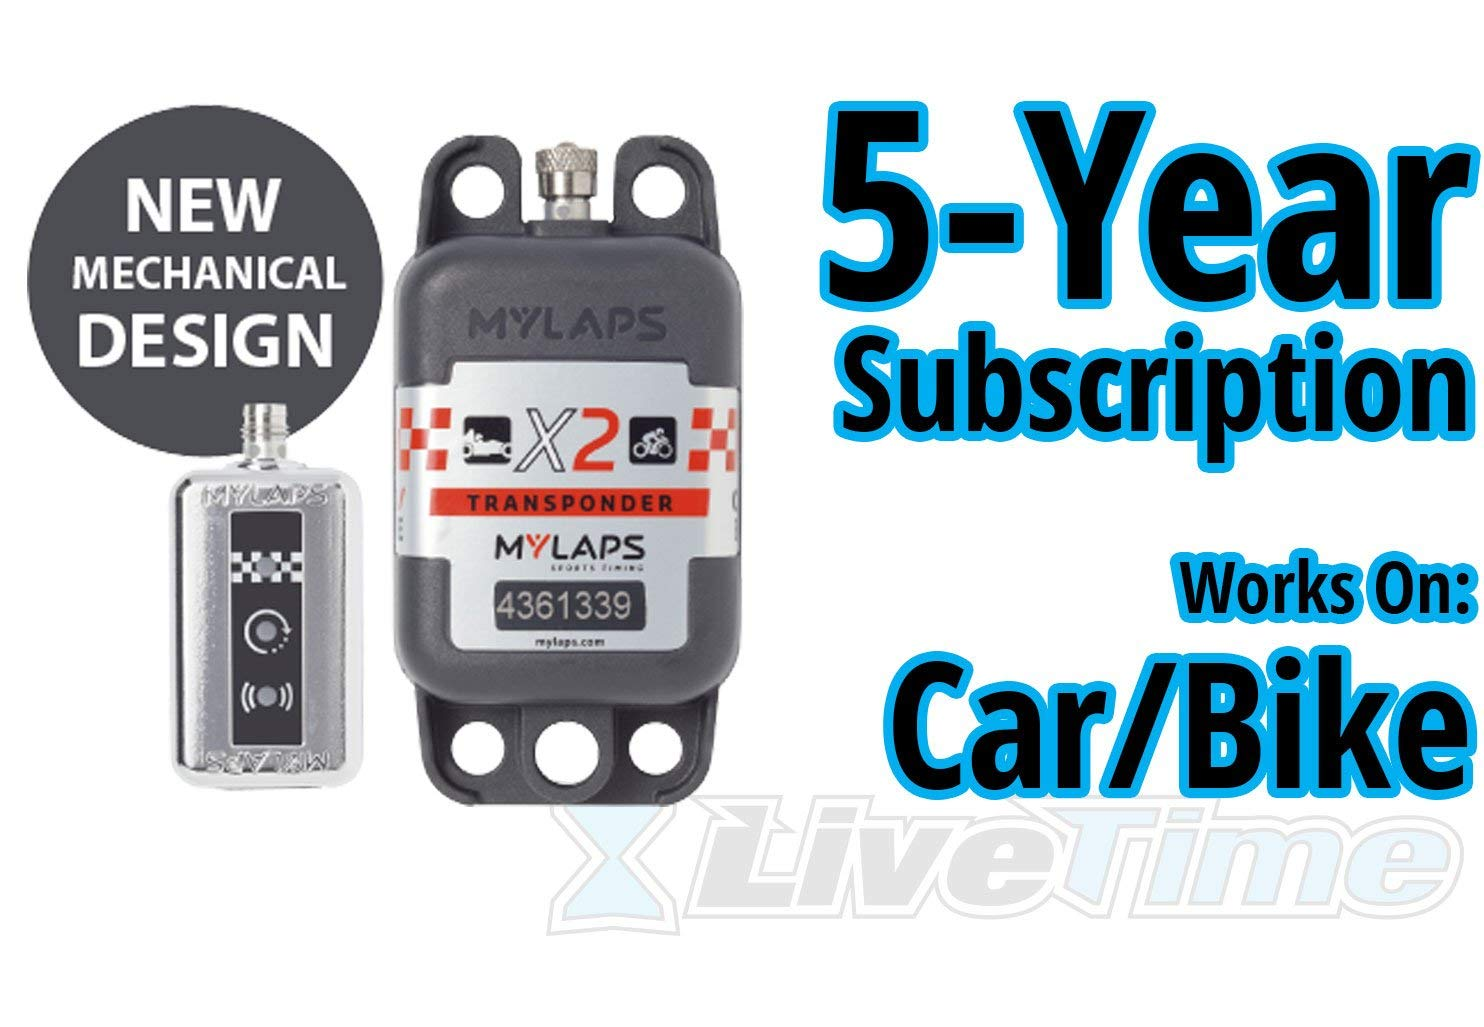 MyLaps X2 Transponder, Rechargeable, for Car/Bike, includes 5-Year Subscription